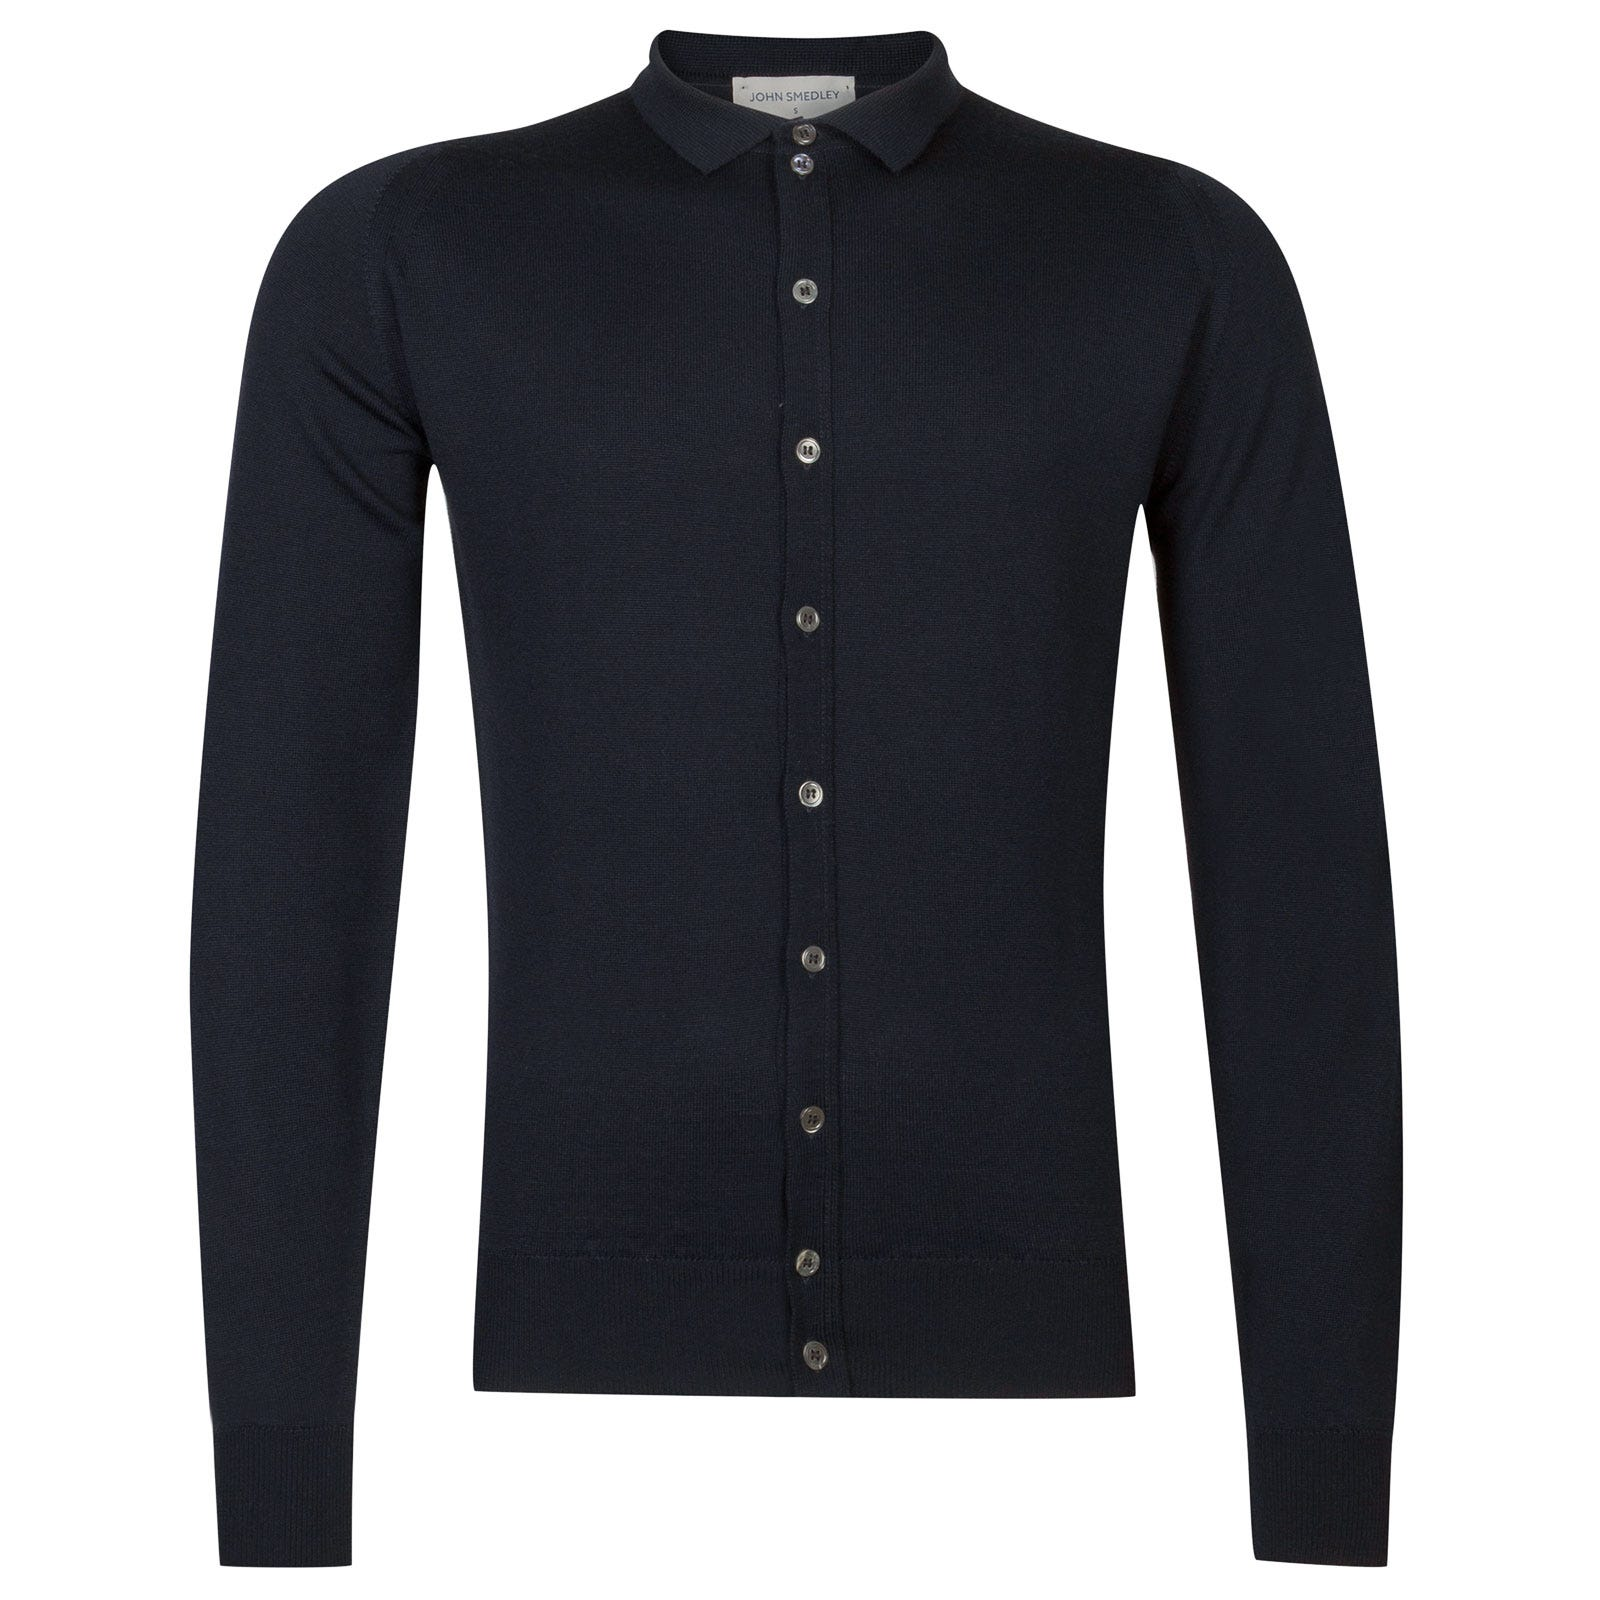 John Smedley parwish Merino Wool Shirt in Midnight-XL